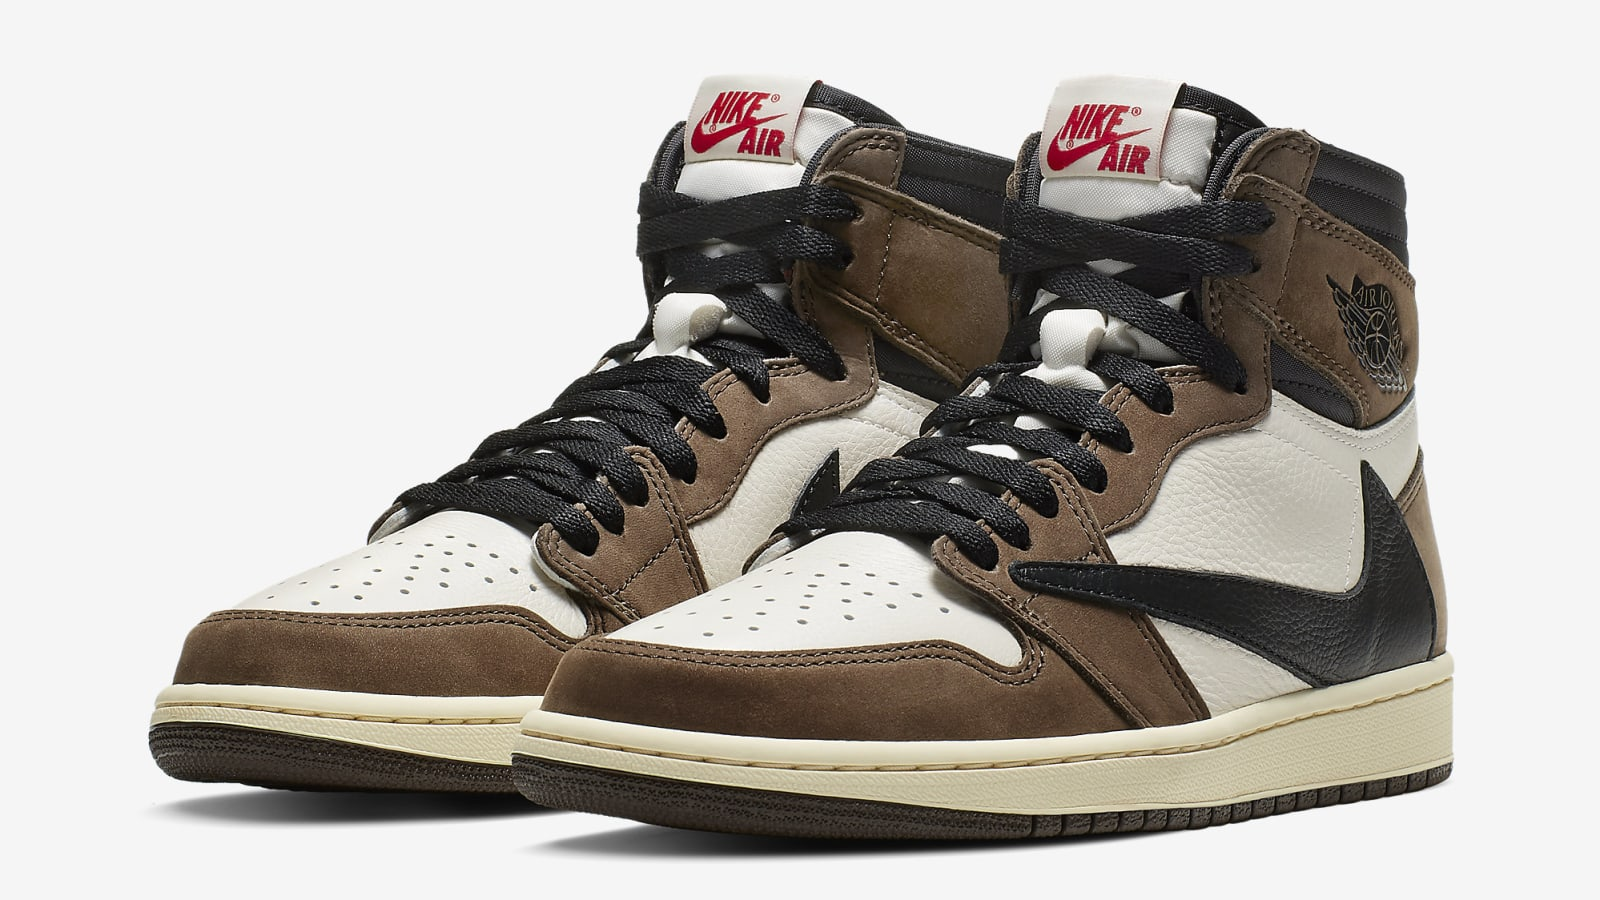 Travis Scott s Air Jordan 1 Collaboration Sold Out in Less Than a Minute 9f7876032